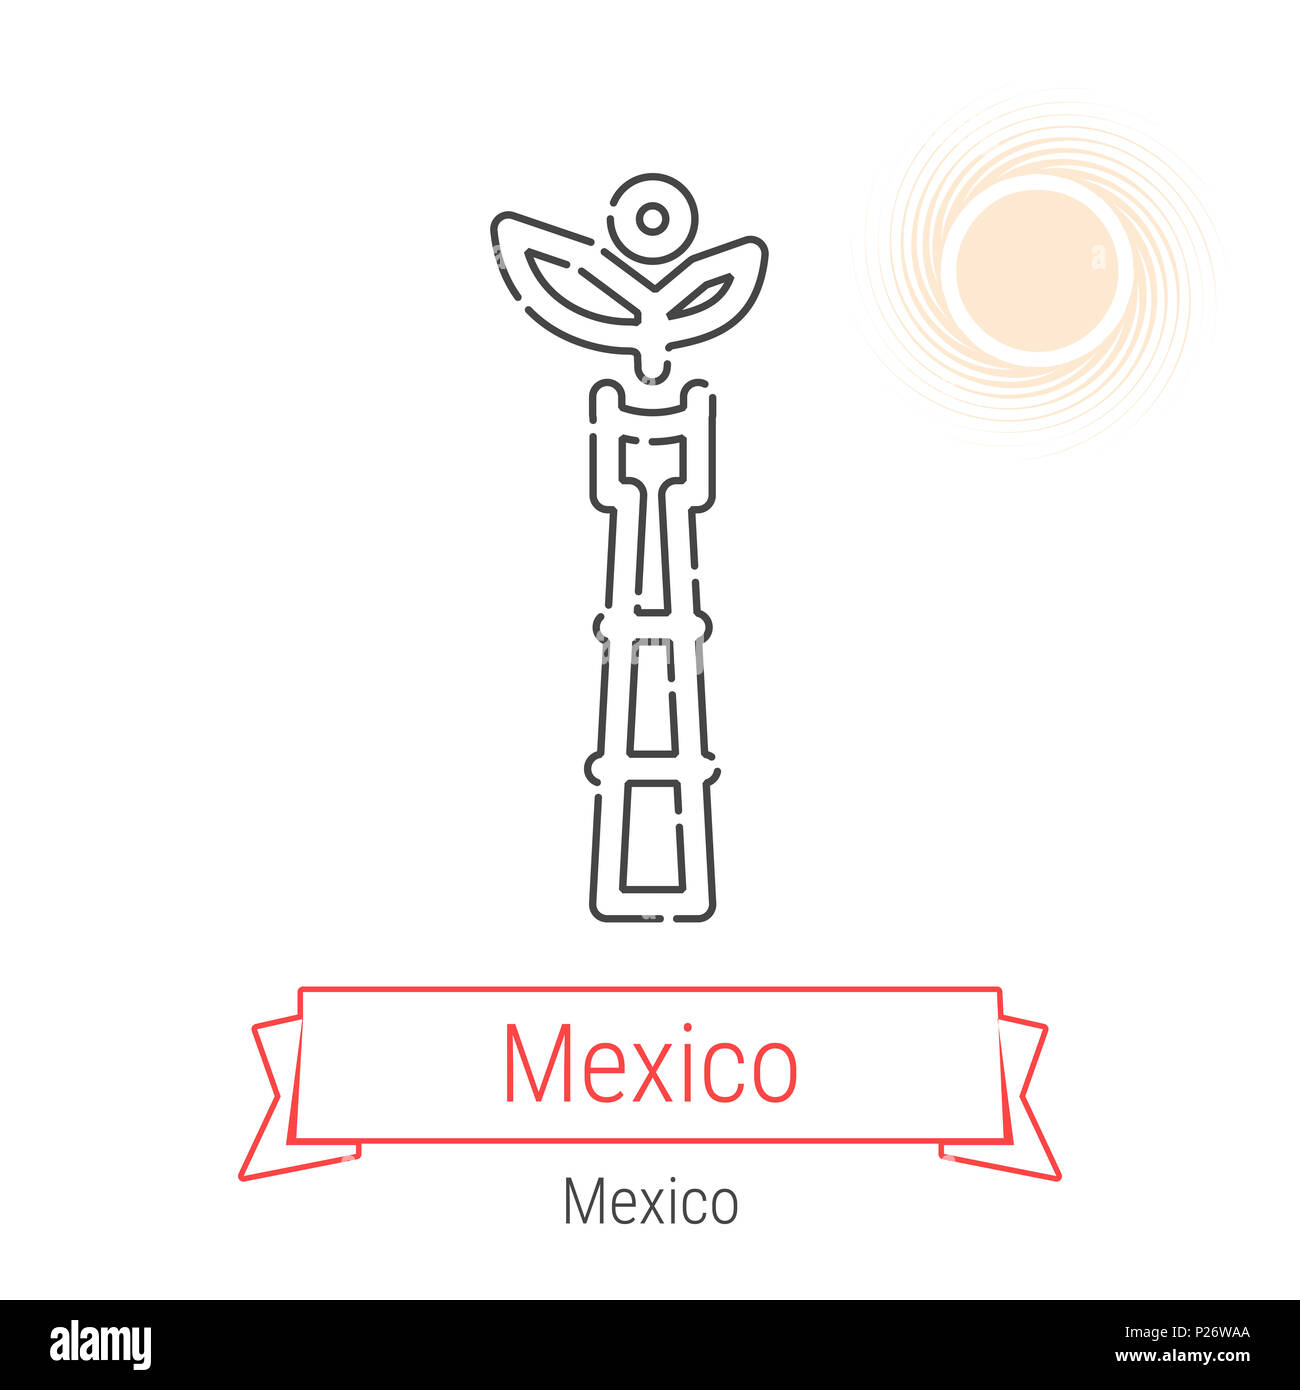 Mexico City Mexico Line Icon With Red Ribbon Isolated On White